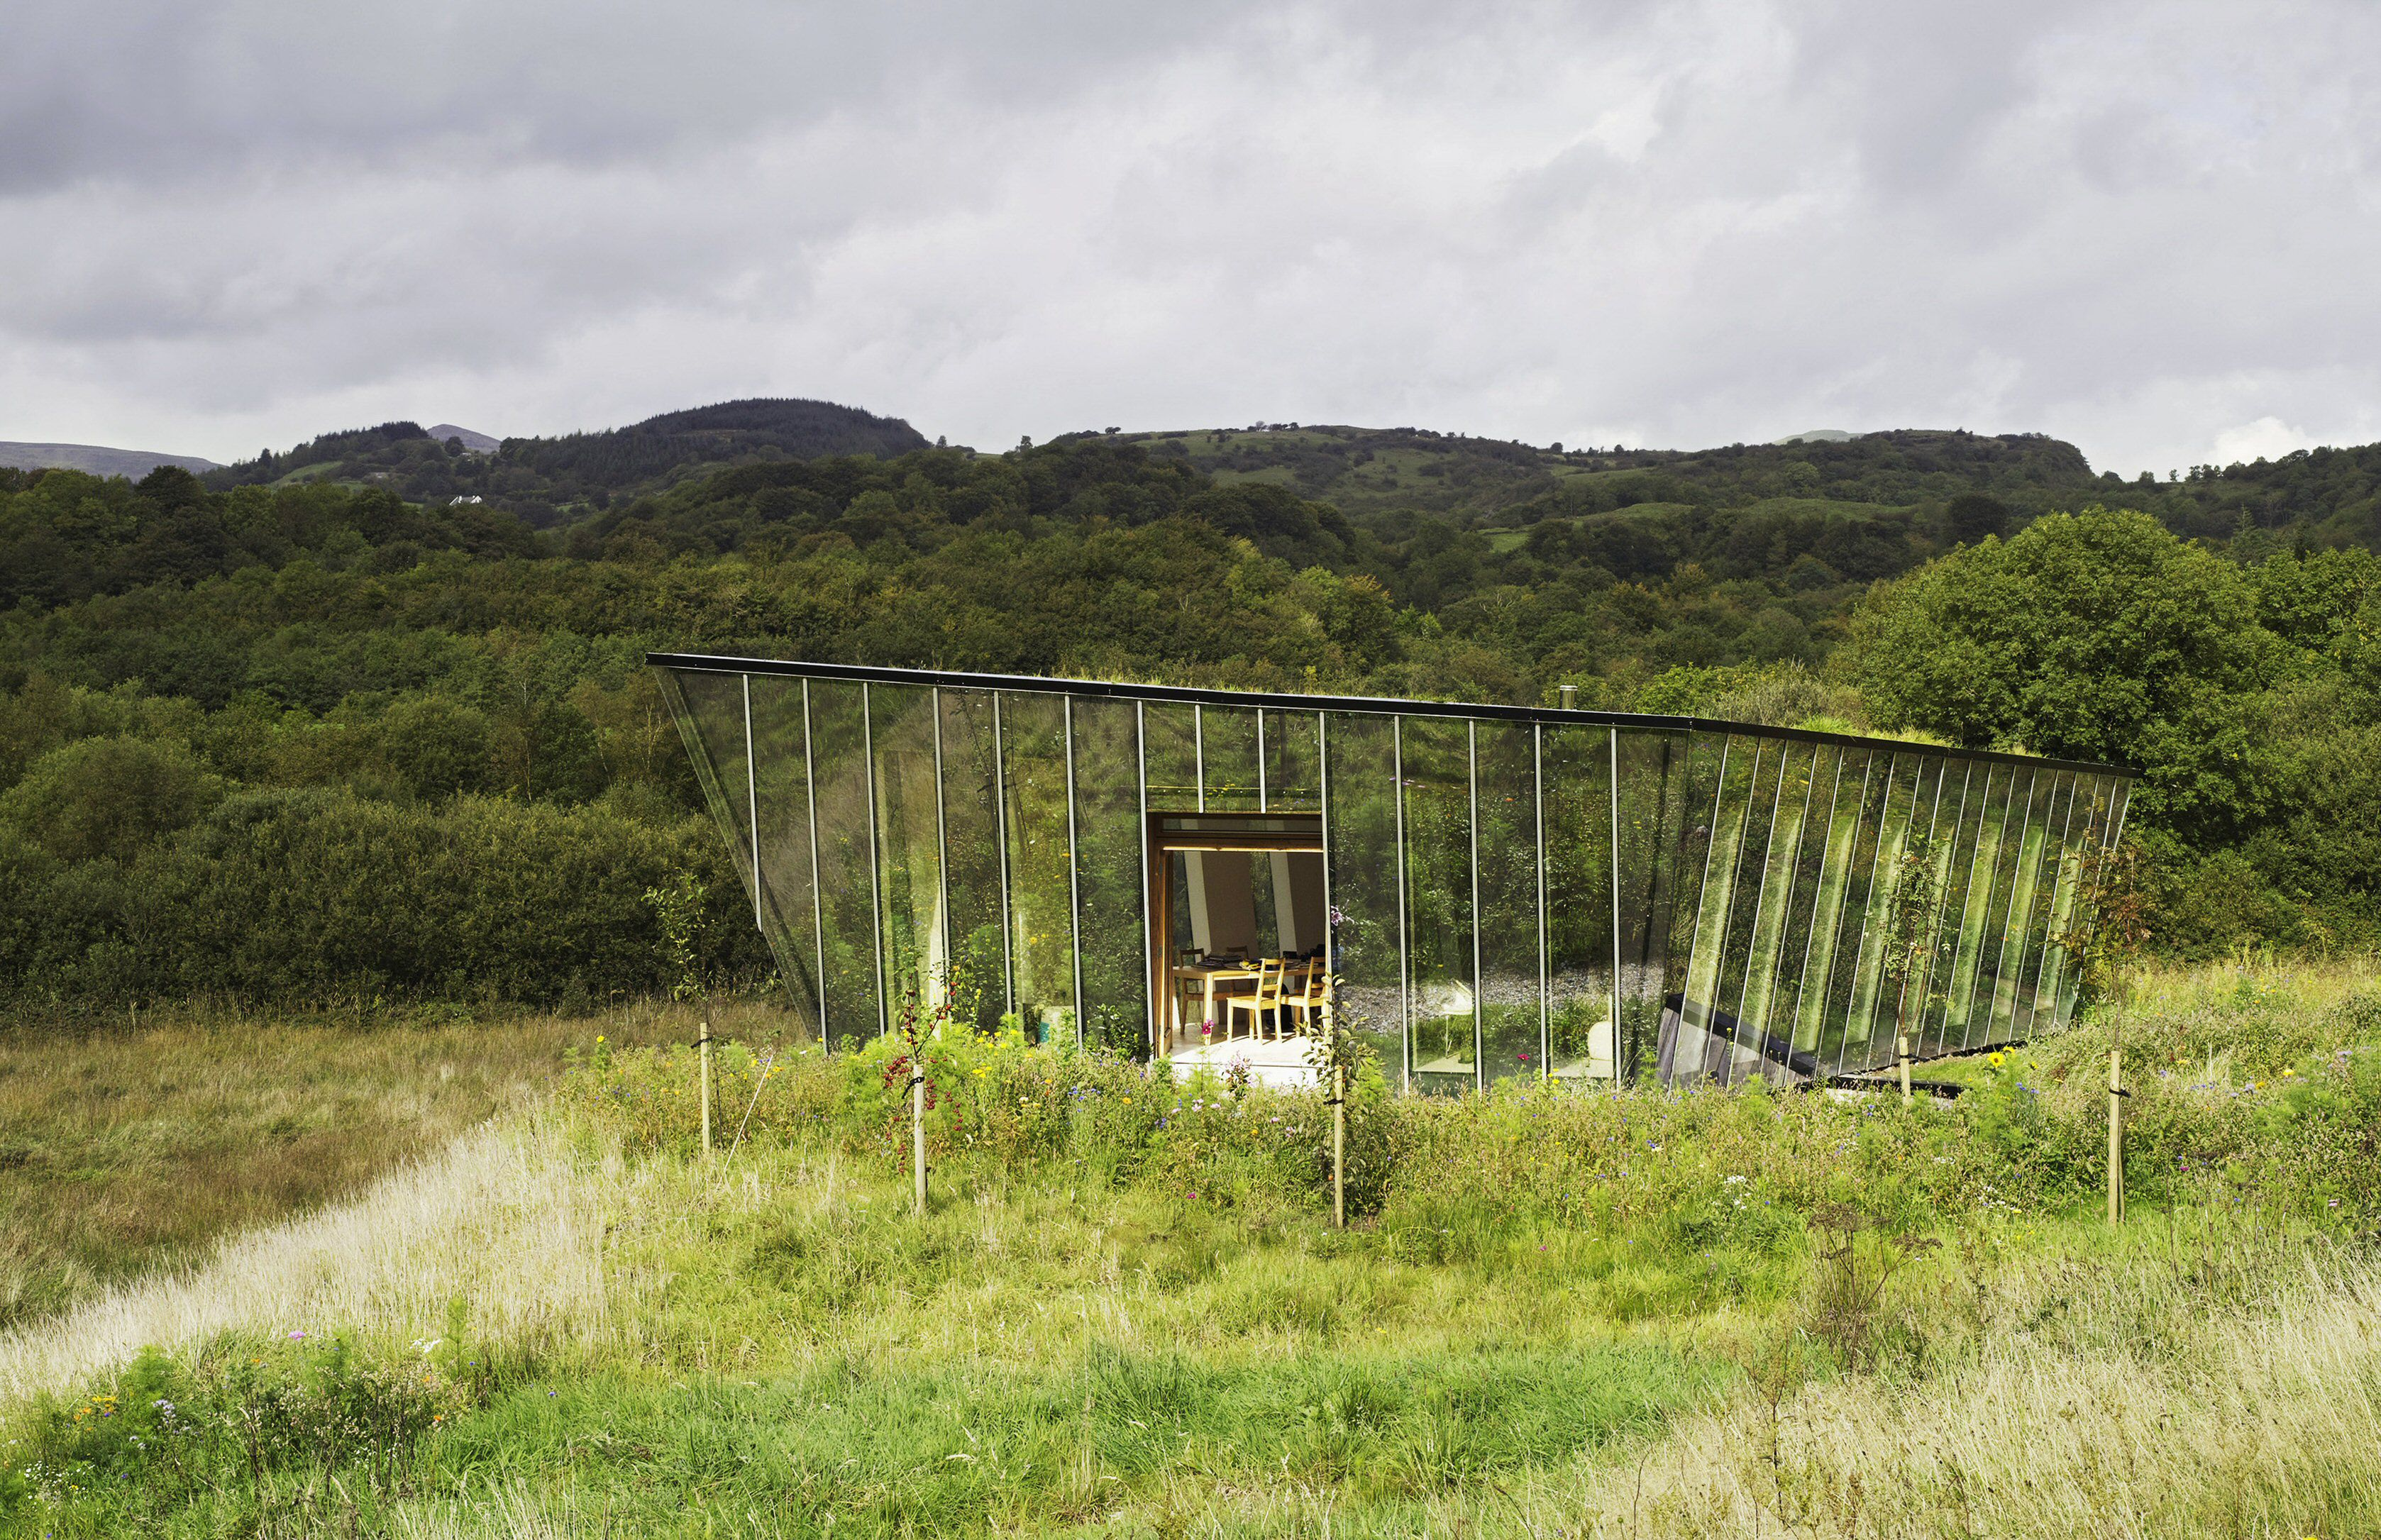 Glass house with green roof blends into Irish countryside, the Mimetic House by Irish Architect Dominic Stevens, Dromahair, County Leitrim, Ireland, 2006